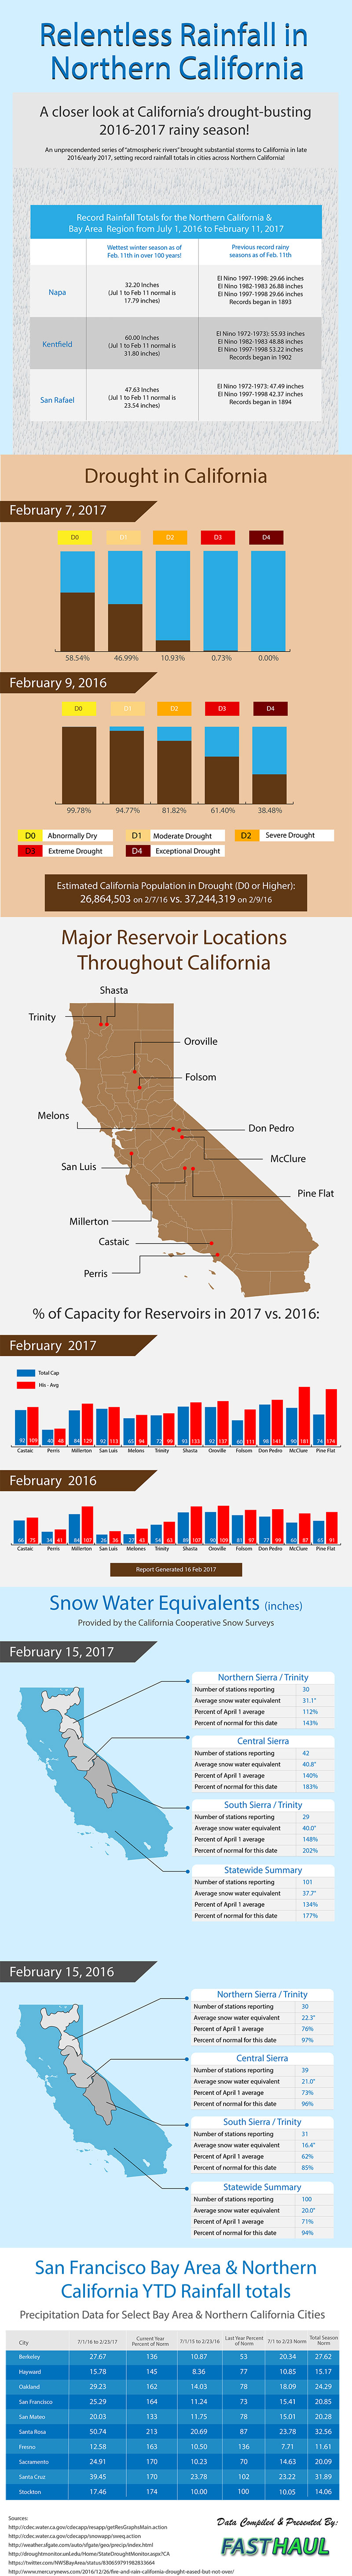 relentless rain of 2016-17 season in Northern California infographic